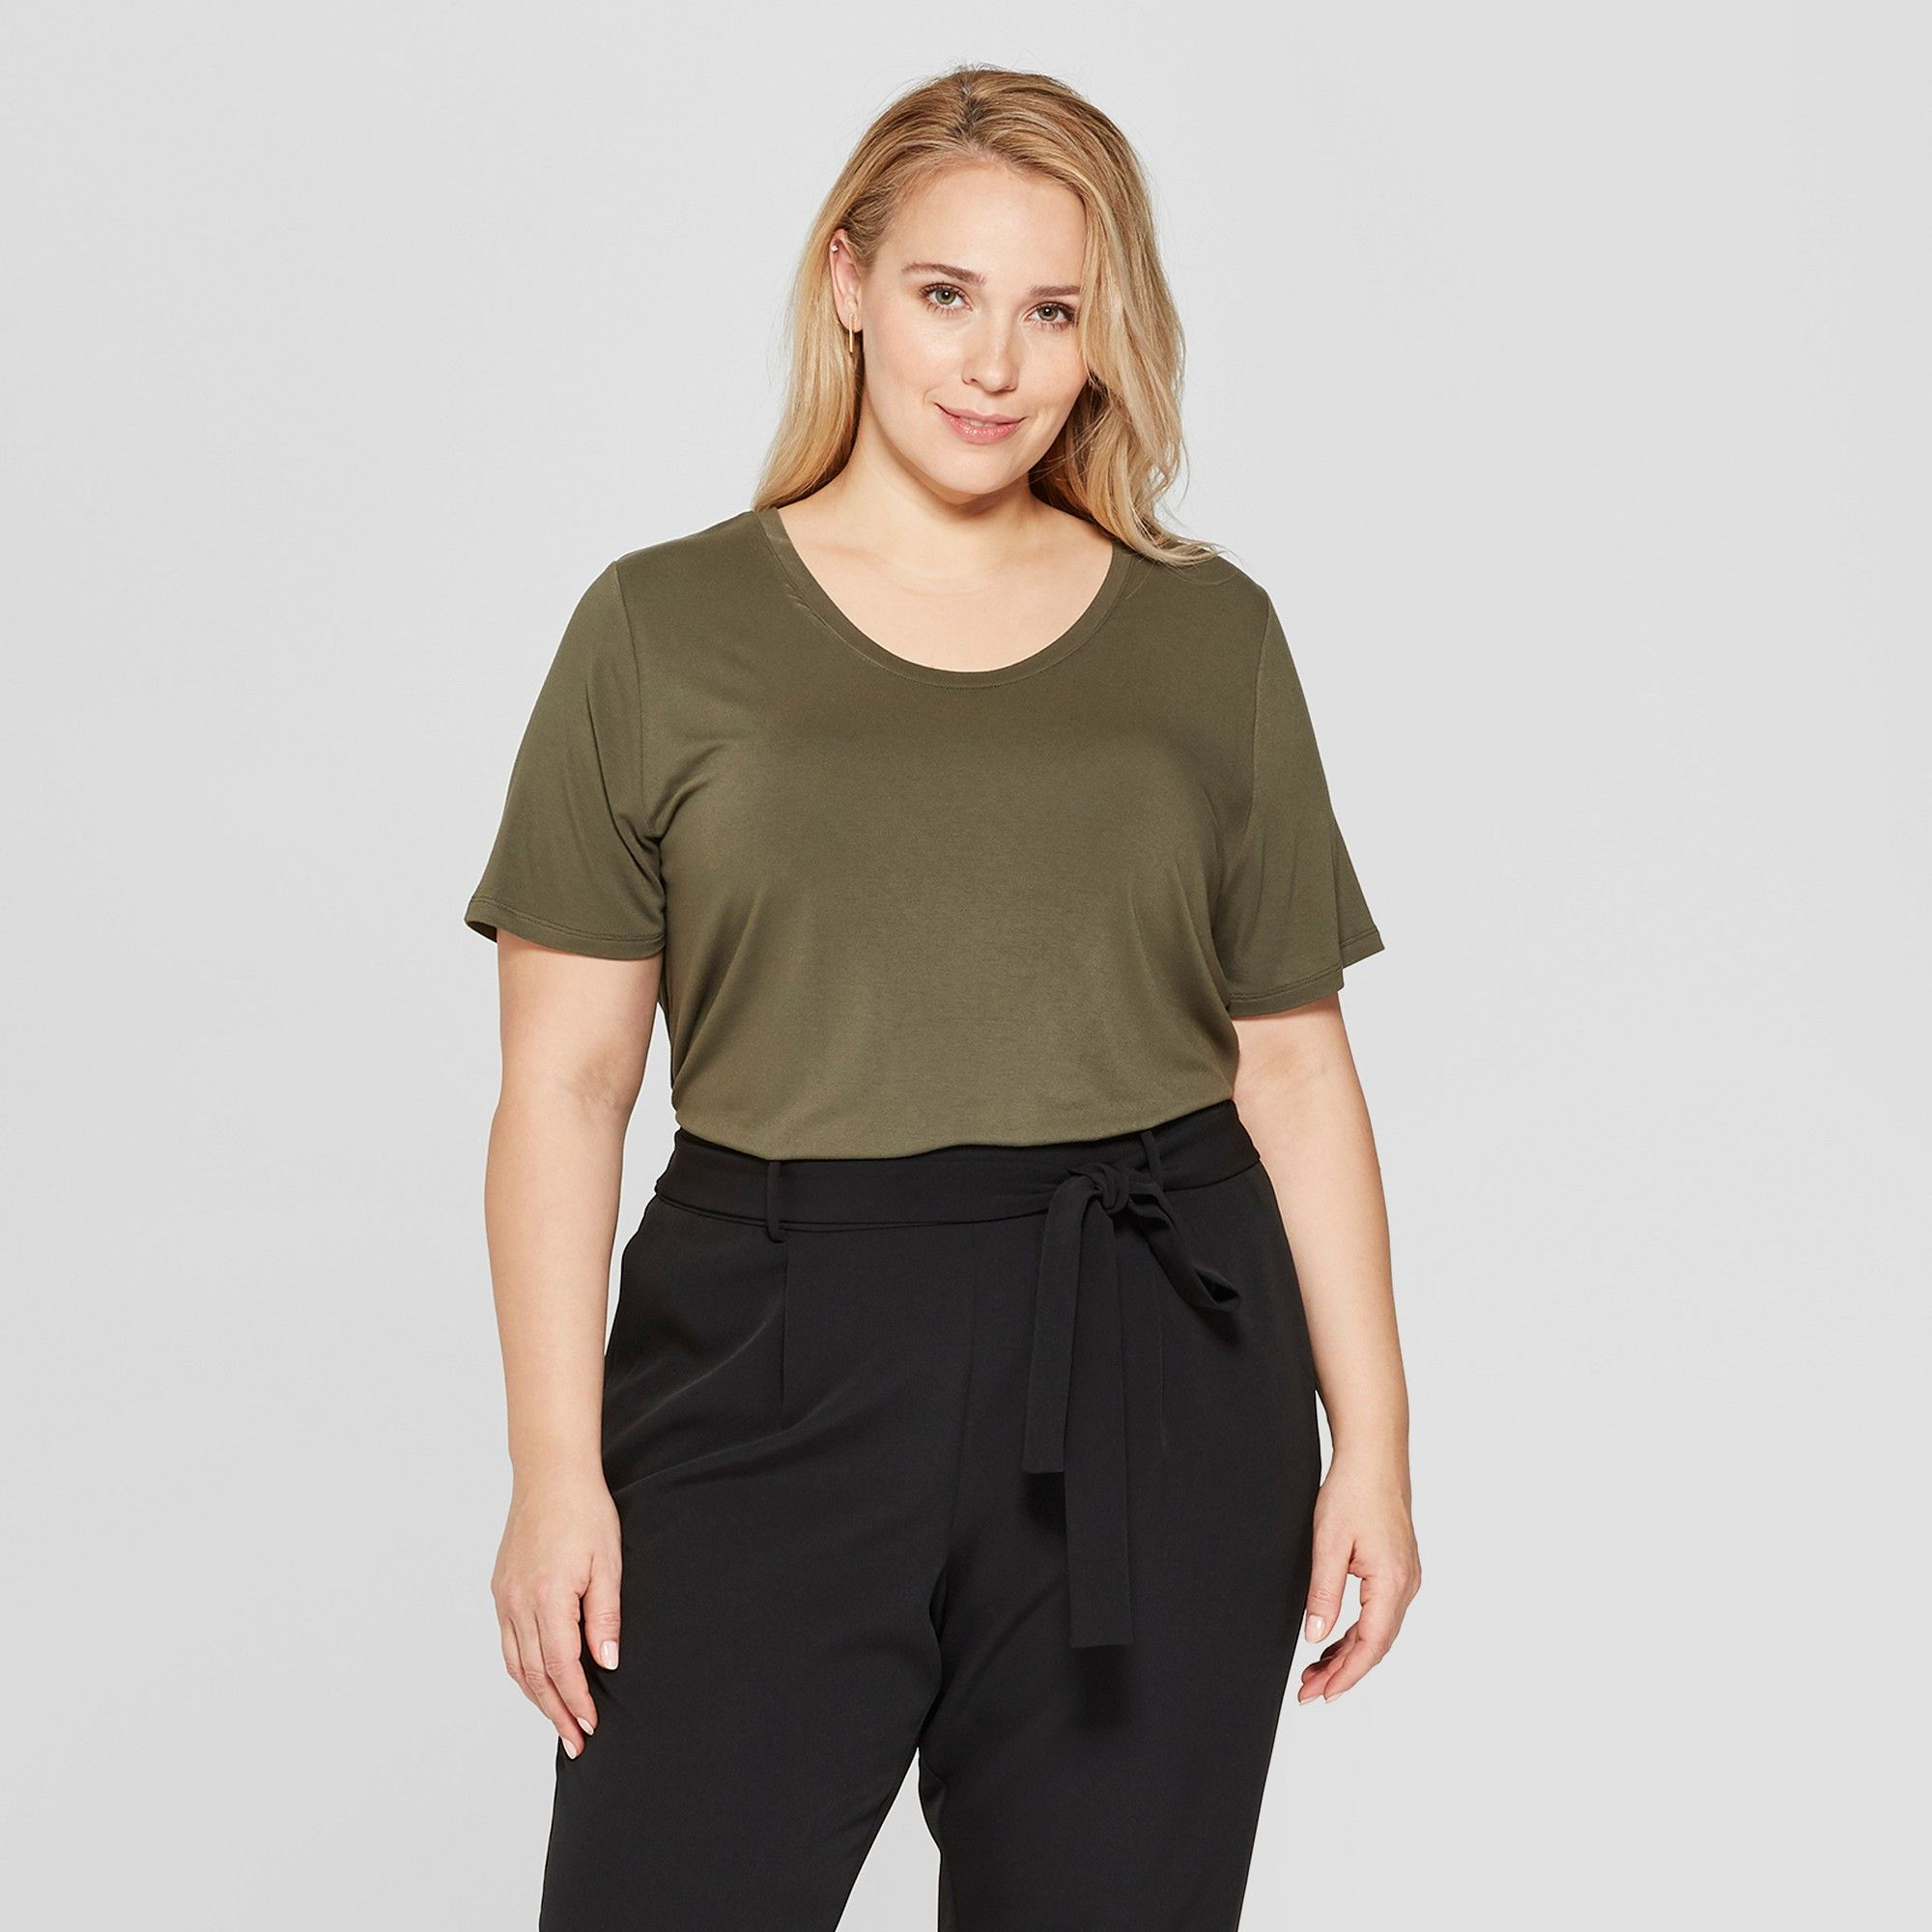 fc17a4da20e Women s Plus Size Short Sleeve Scoop Neck Relaxed T-Shirt - Ava   Viv Olive